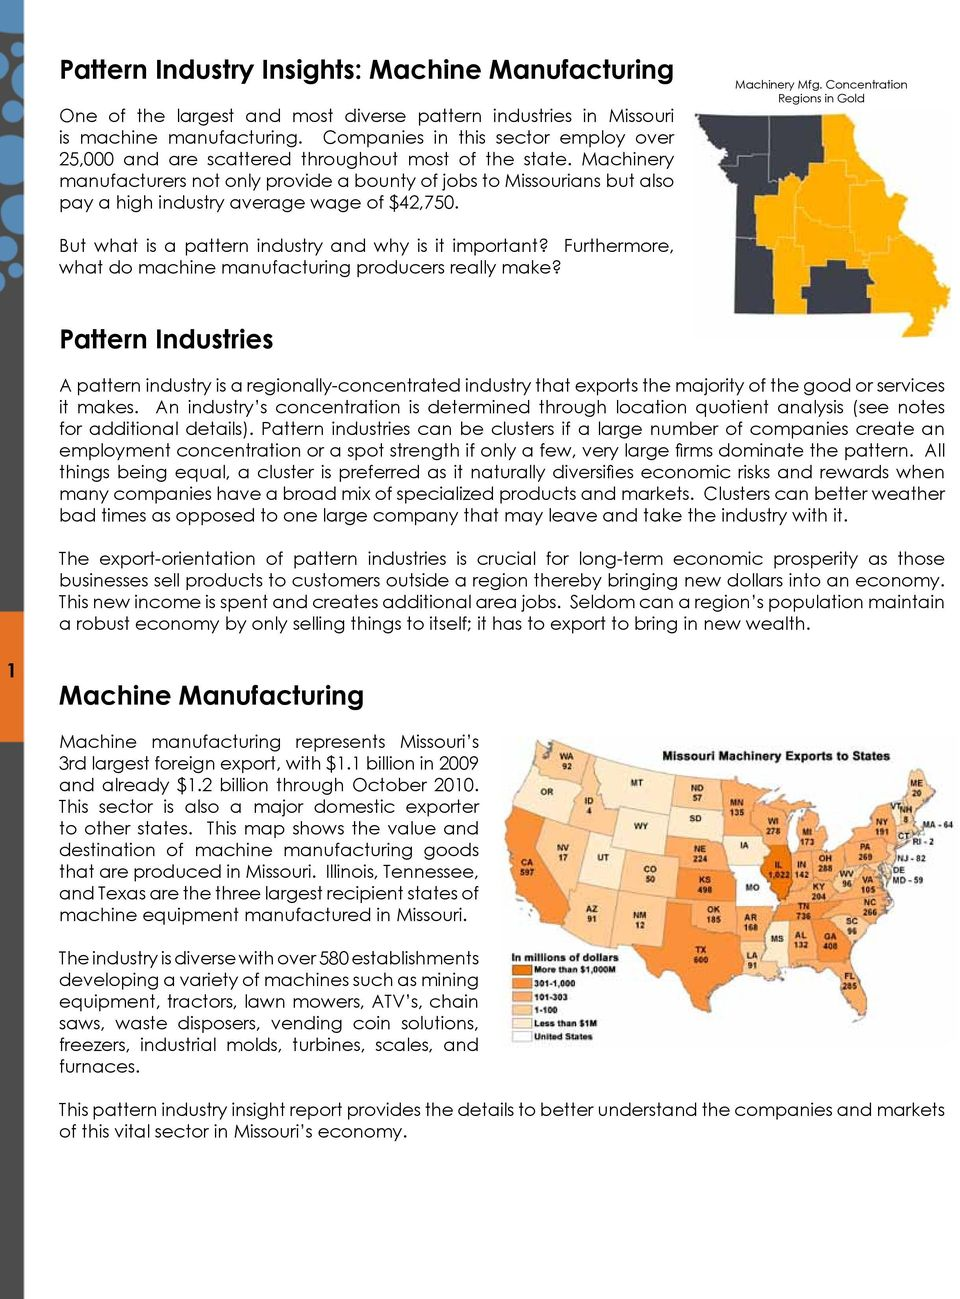 Machinery manufacturers not only provide a bounty of jobs to Missourians but also pay a high industry average wage of $42,750. Machinery Mfg.